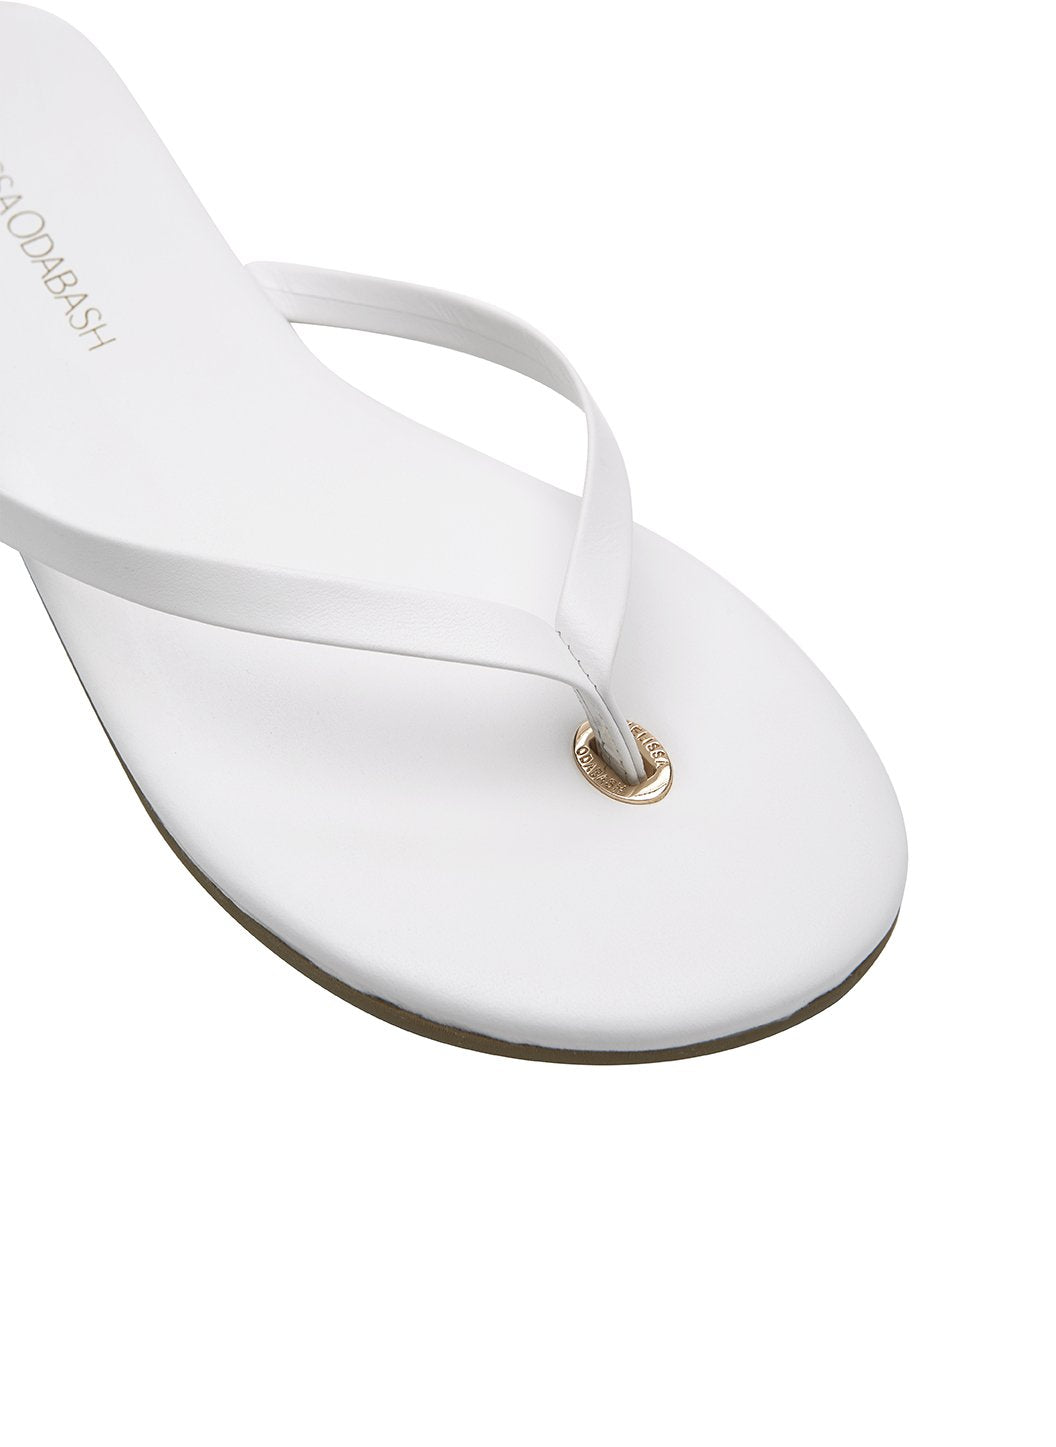 flip flop leather white 2019 3